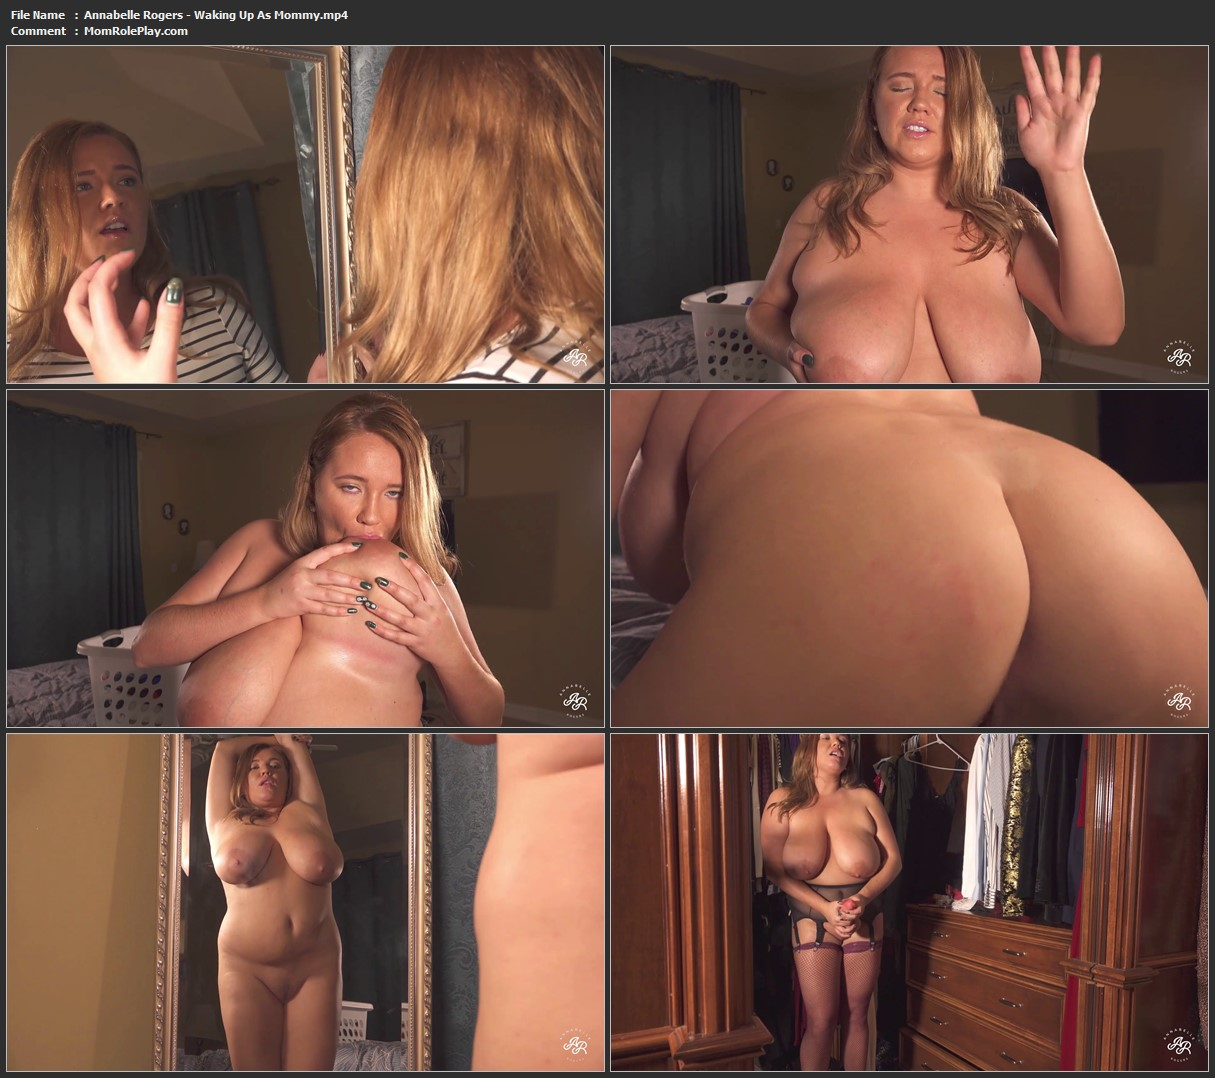 Annabelle Rogers - Waking Up As Mommy